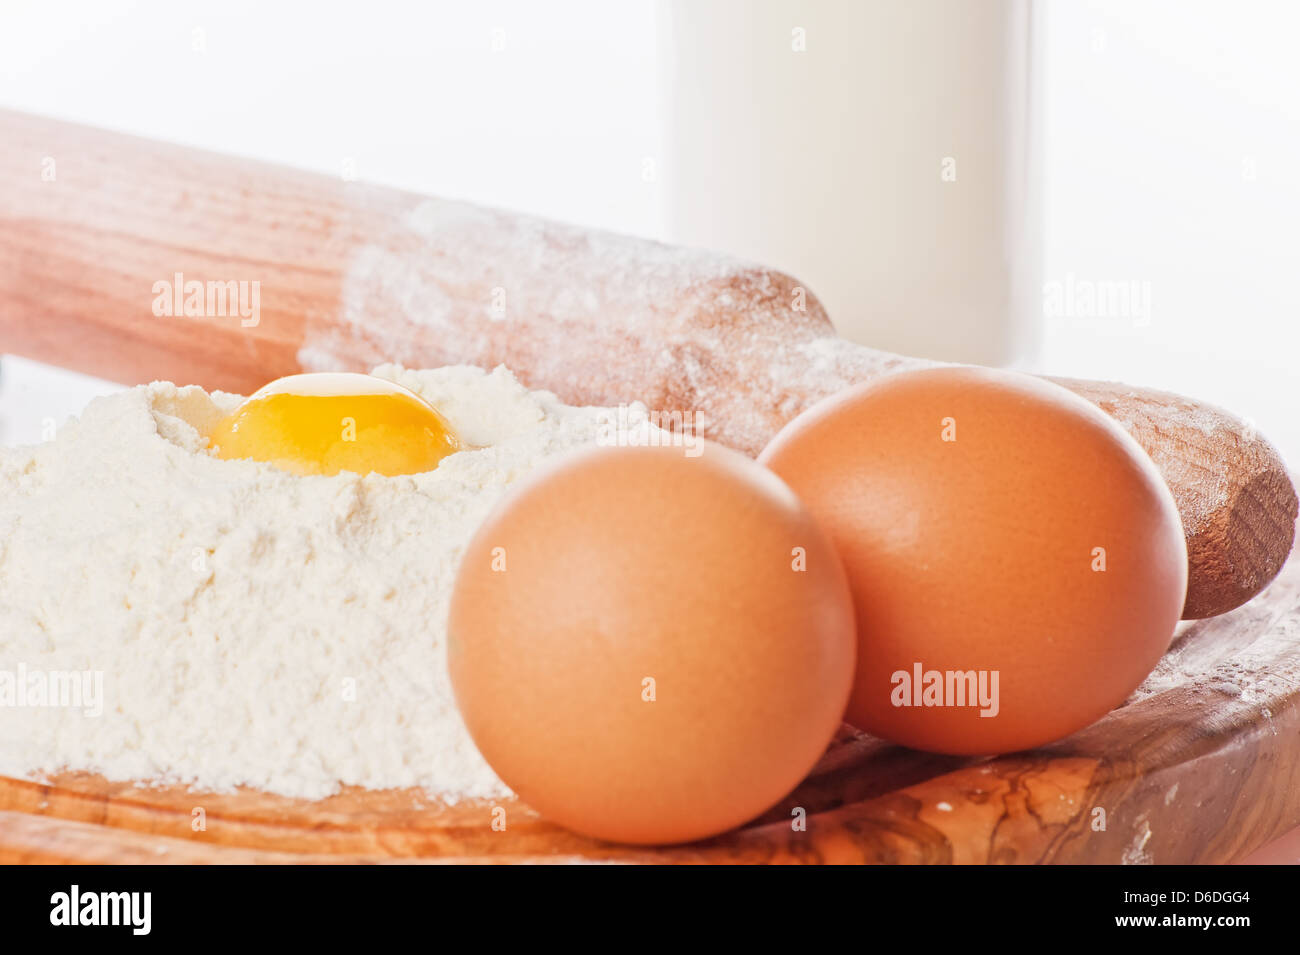 Vintage rolling pin with flour and eggs. Country still life images with soft lighting and small degrees of freedom - Stock Image